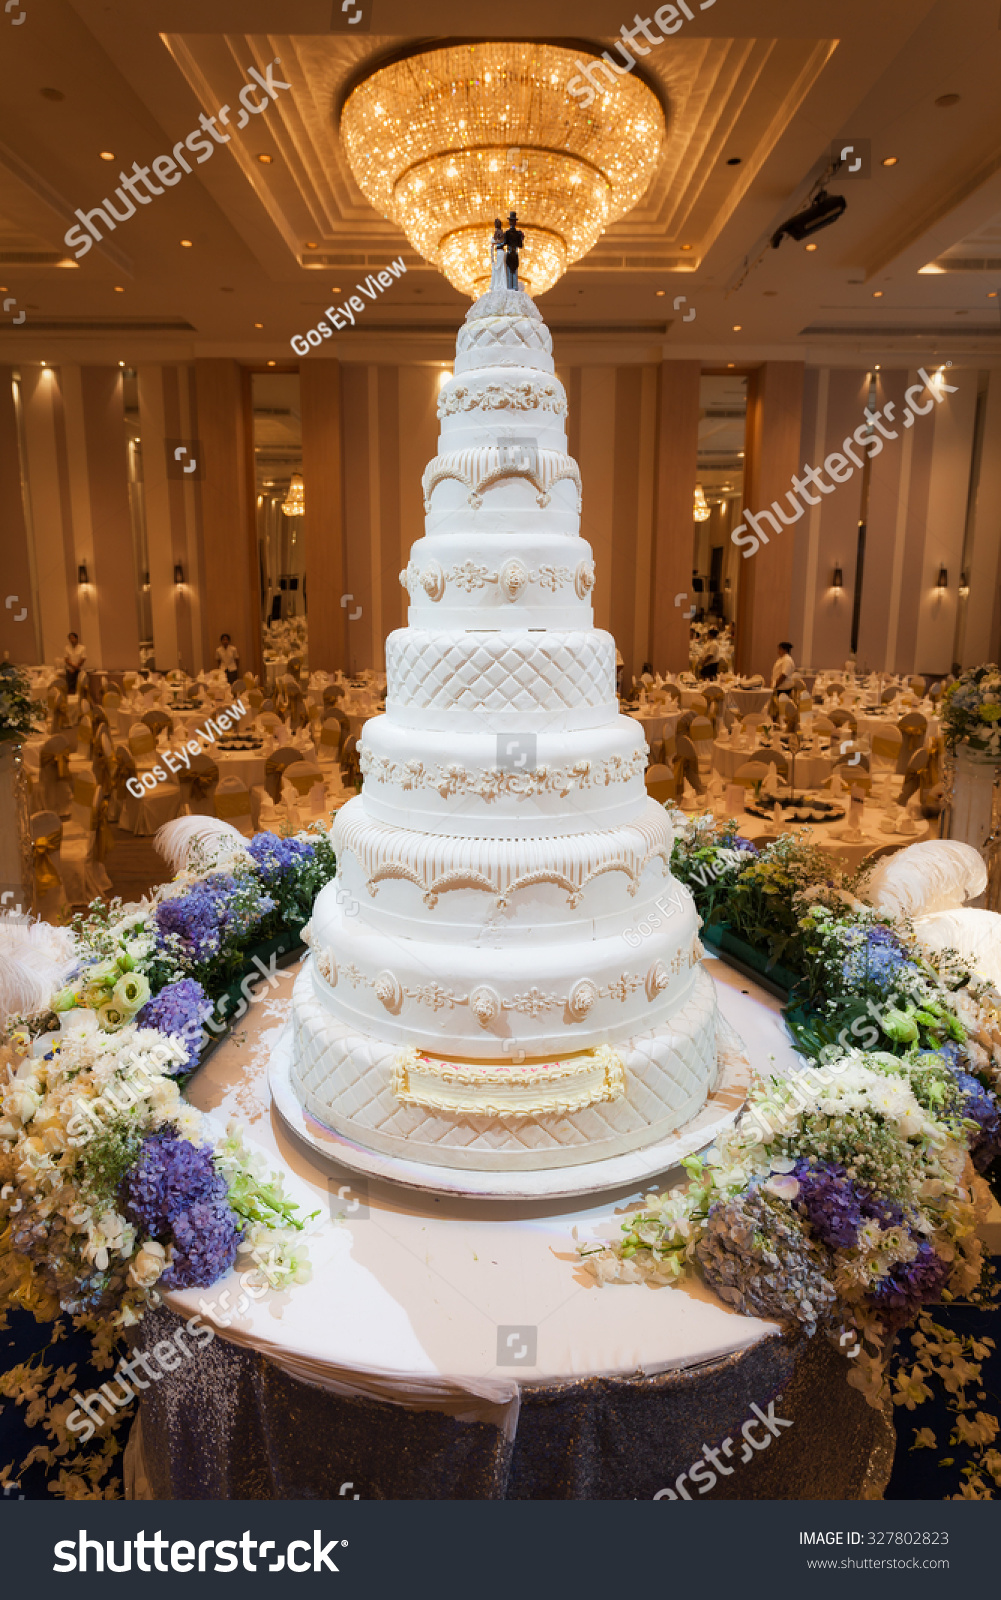 Flowers decorations around wedding cake chandelier stock photo flowers and decorations around wedding cake with chandelier on ceiling arubaitofo Image collections